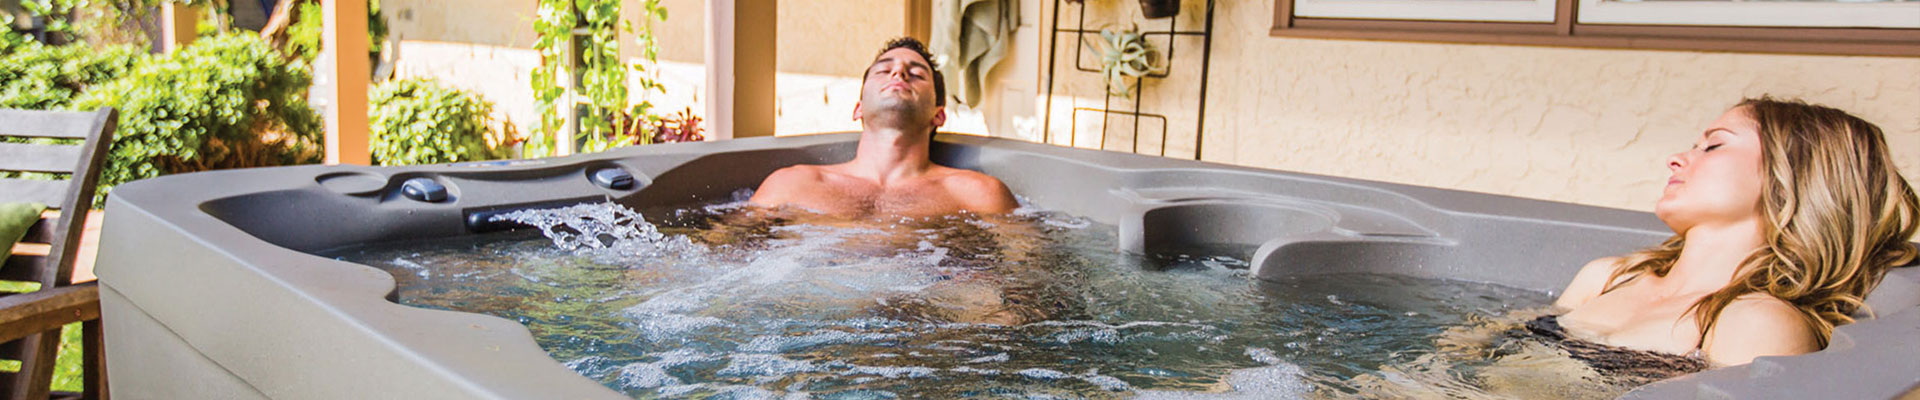 Hot Tubs Dealer Woodbury, Hot Spring Spas Plymouth Shares Tips for National Gratitude Month